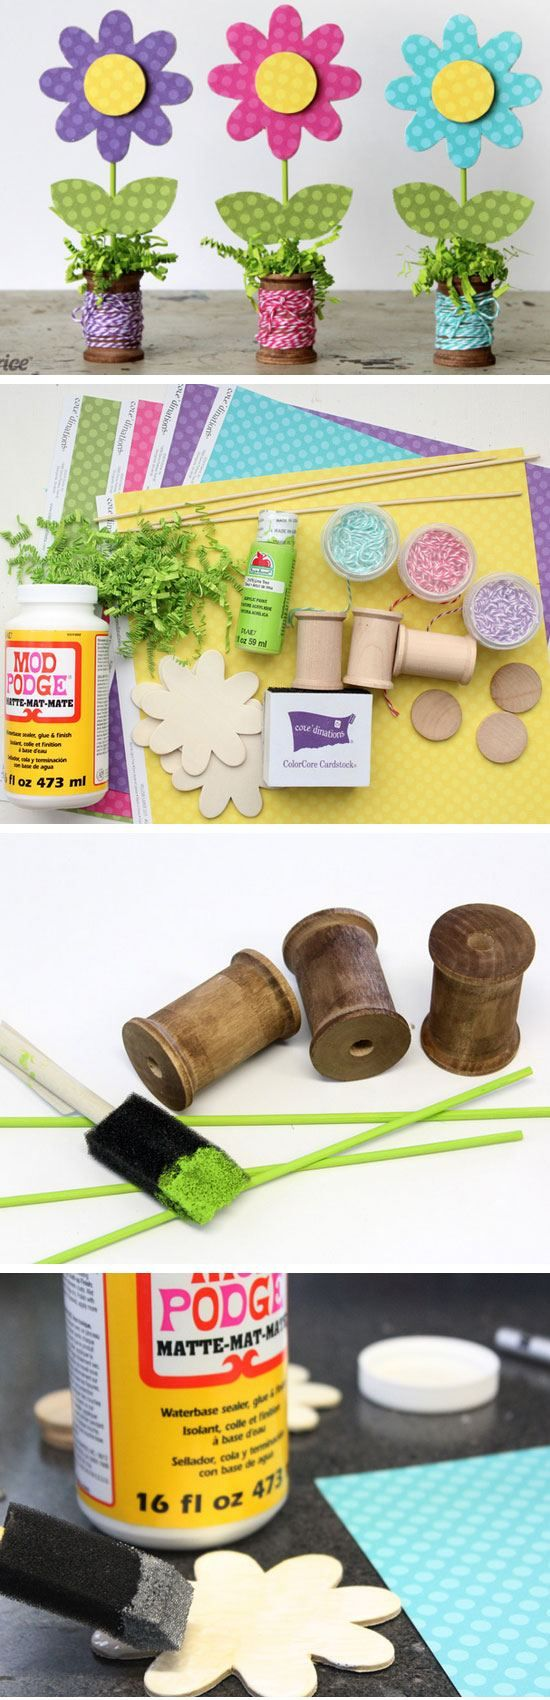 19 awesome diy mothers day crafts for kids to make | wooden spools